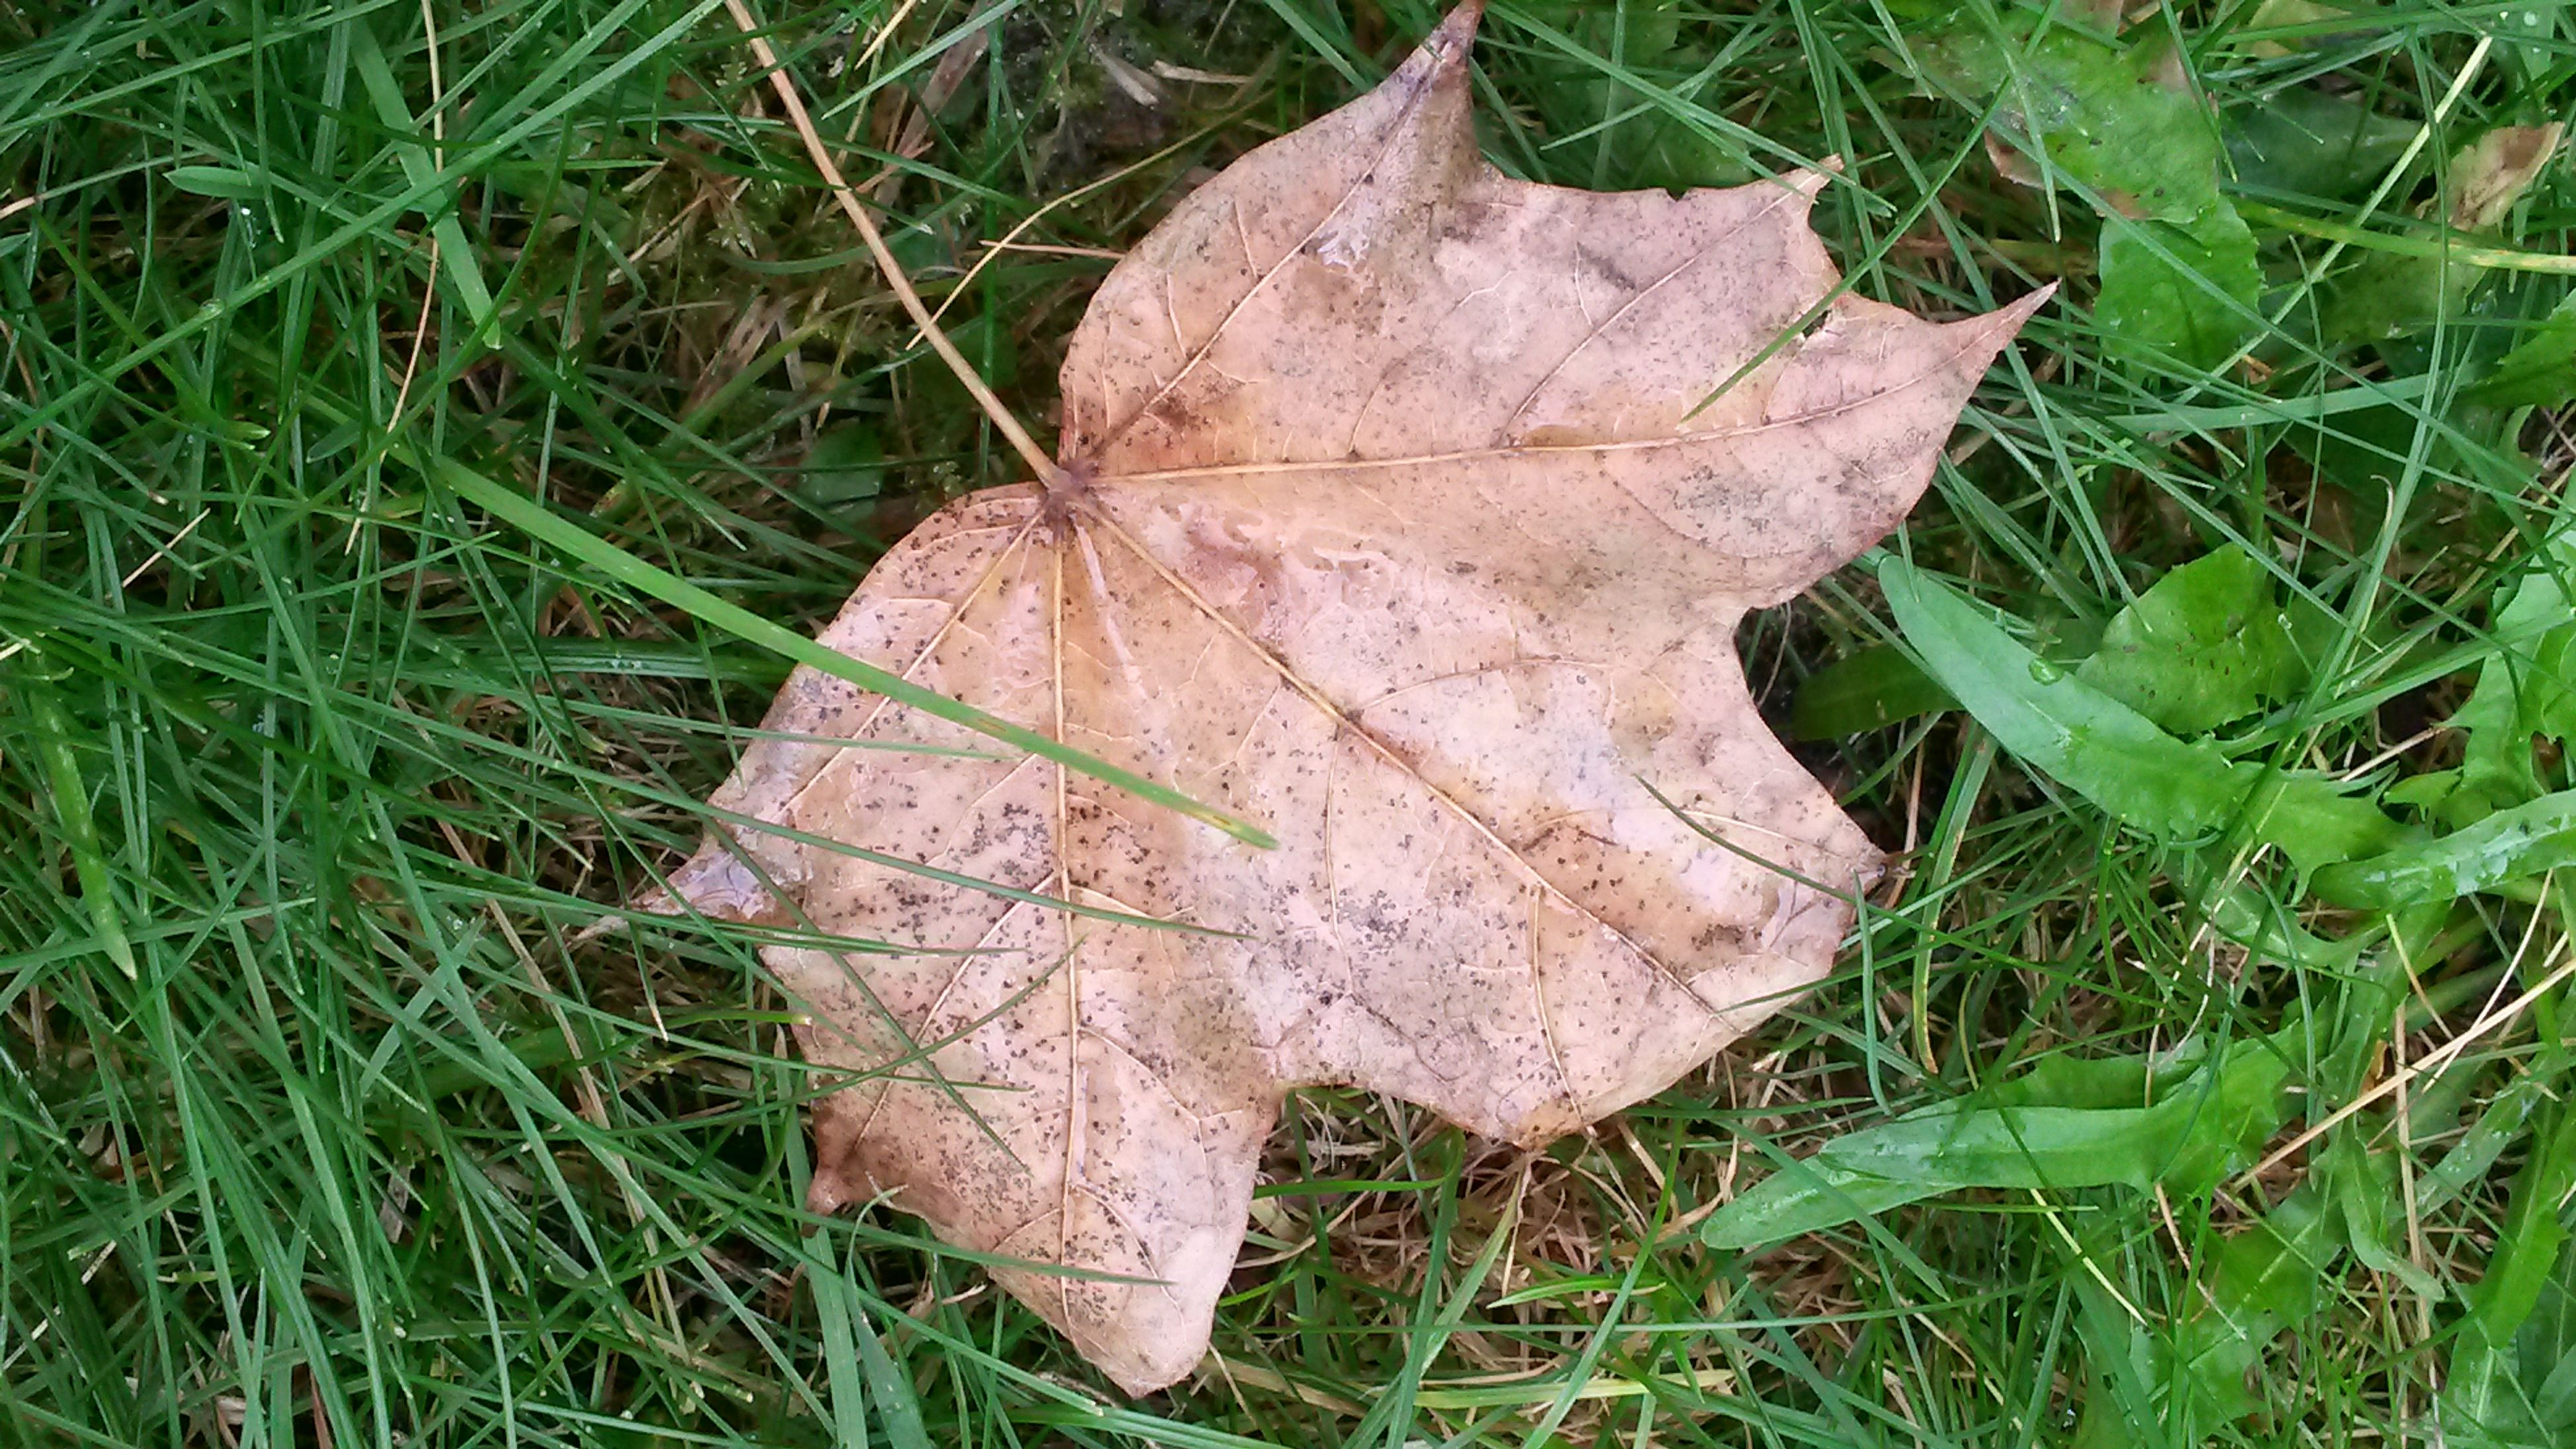 grass, leaf, dry, field, close-up, autumn, nature, high angle view, grassy, change, growth, fallen, day, leaf vein, green color, natural pattern, season, tranquility, plant, outdoors